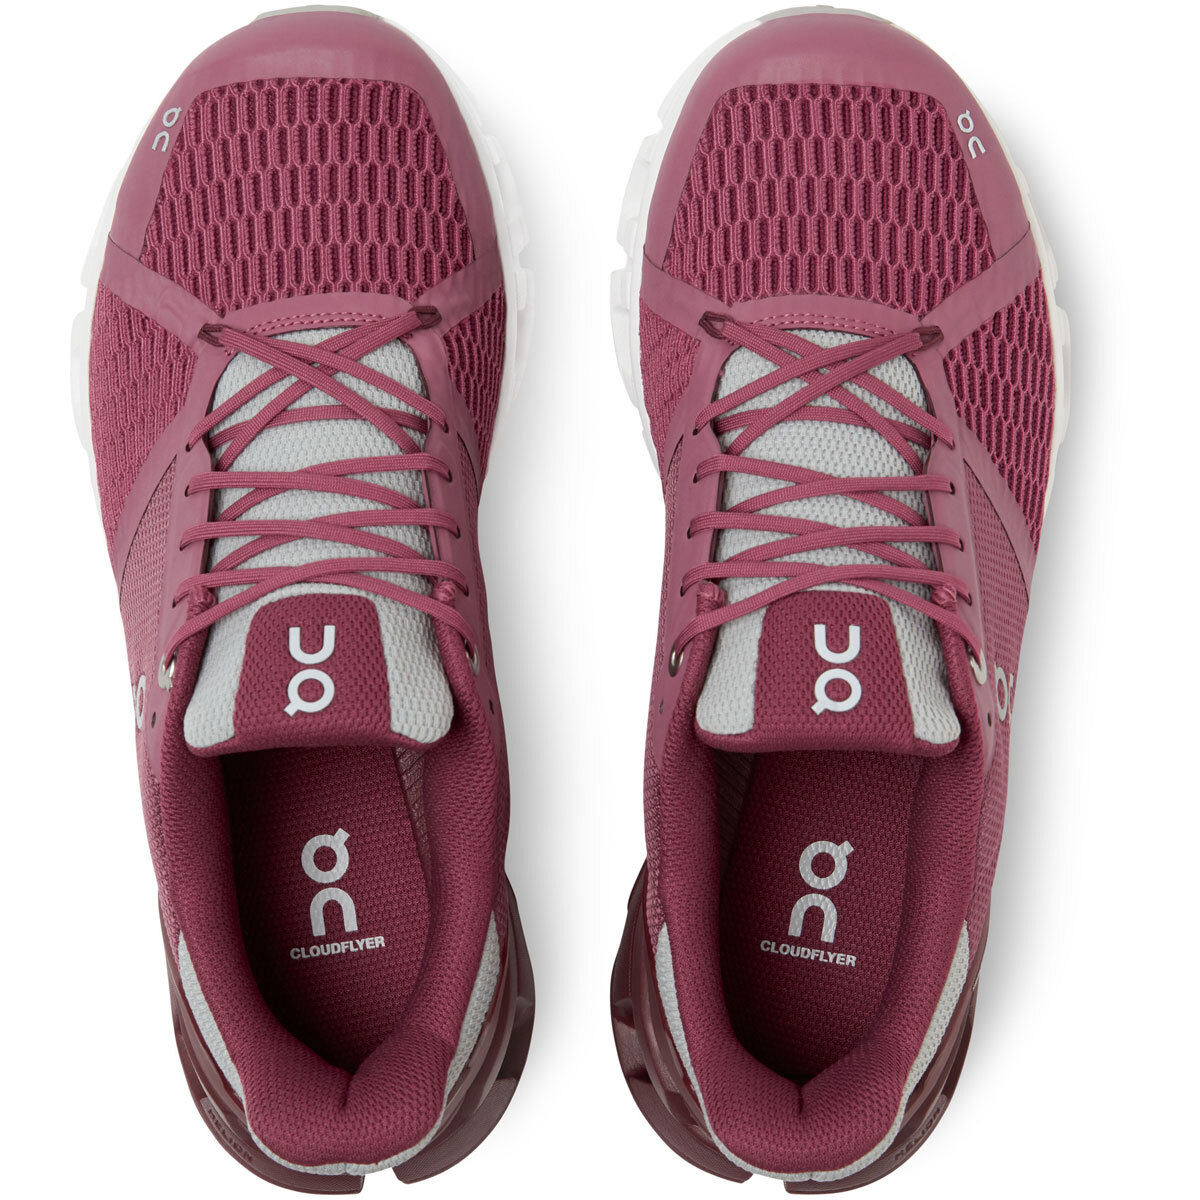 Women's On Cloudflyer 2.0 Running Shoe - Color: Magenta/Mulberry - Size: 5 - Width: Regular, Magenta/Mulberry, large, image 4